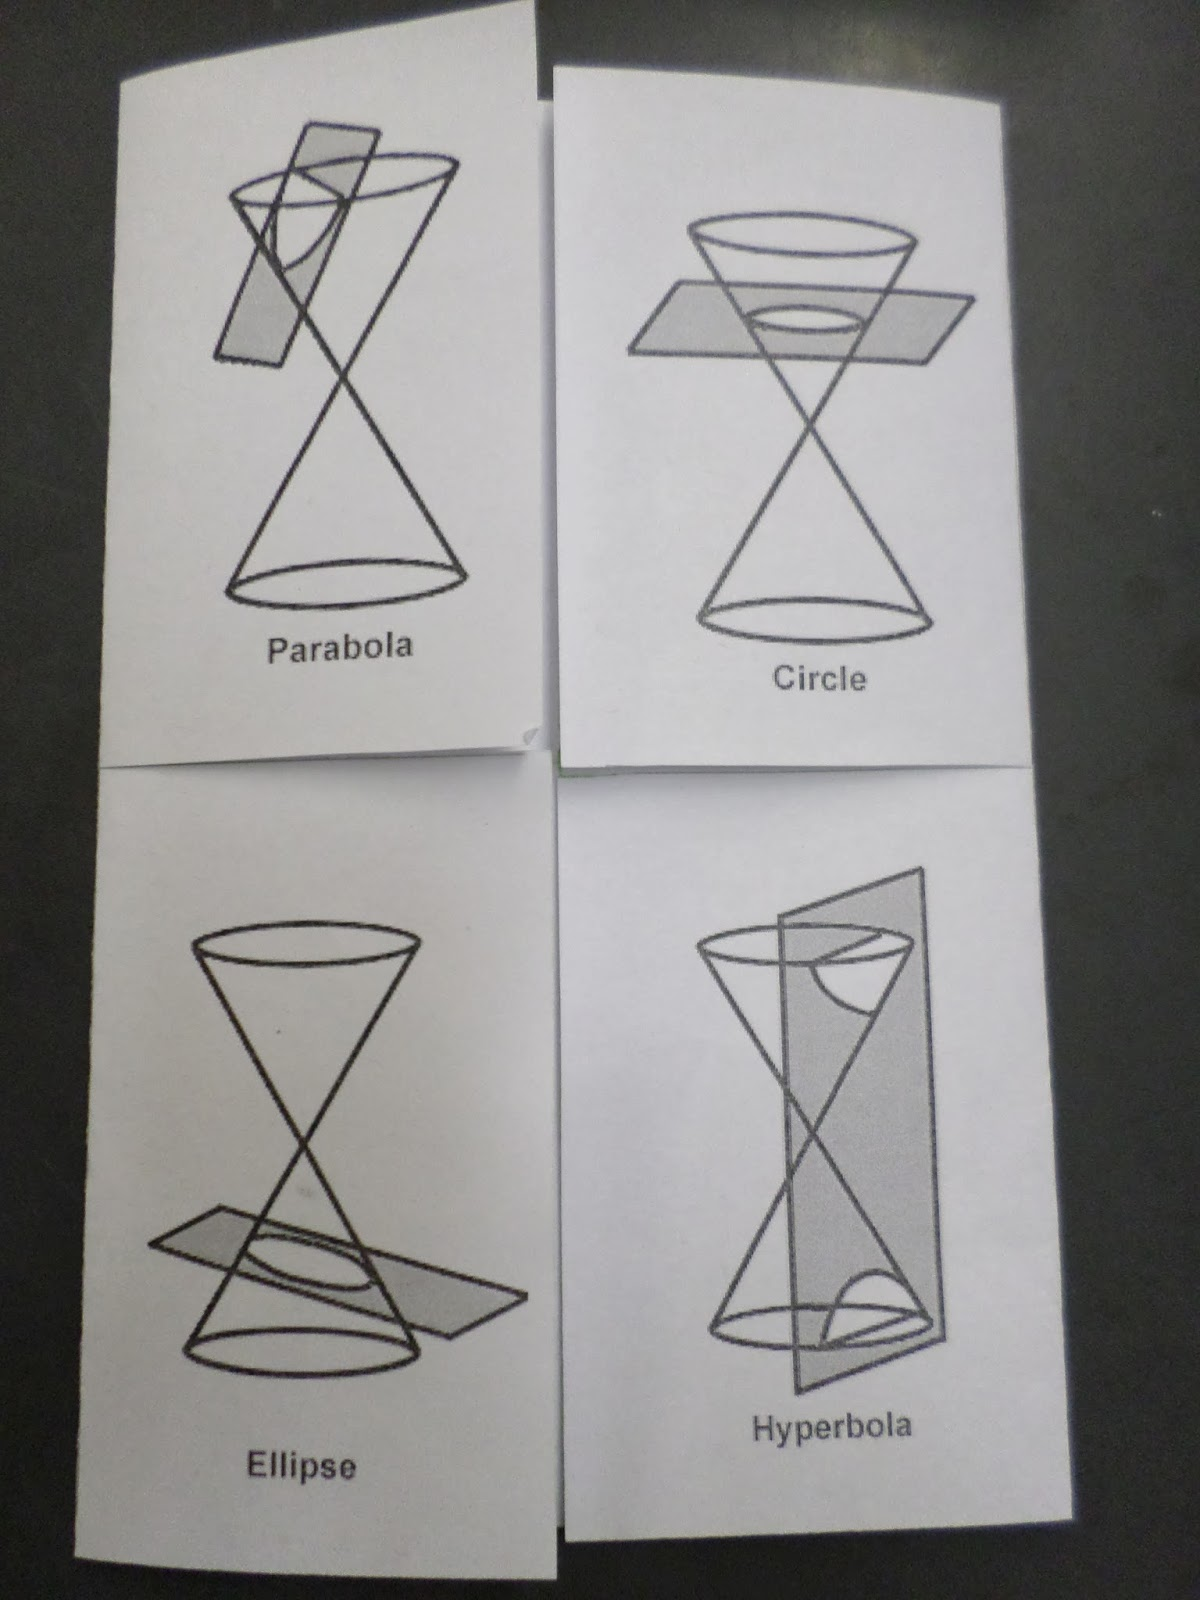 a paper on conic sections Sometimes, you may see it stated that there are 3 types of conic sections, because the circle can be considered a special kind of ellipse (we'll discuss that more curl cardstock half-circle into a cone and secure with tape and then place parchment paper inside (do not tape parchment paper) pack cone.